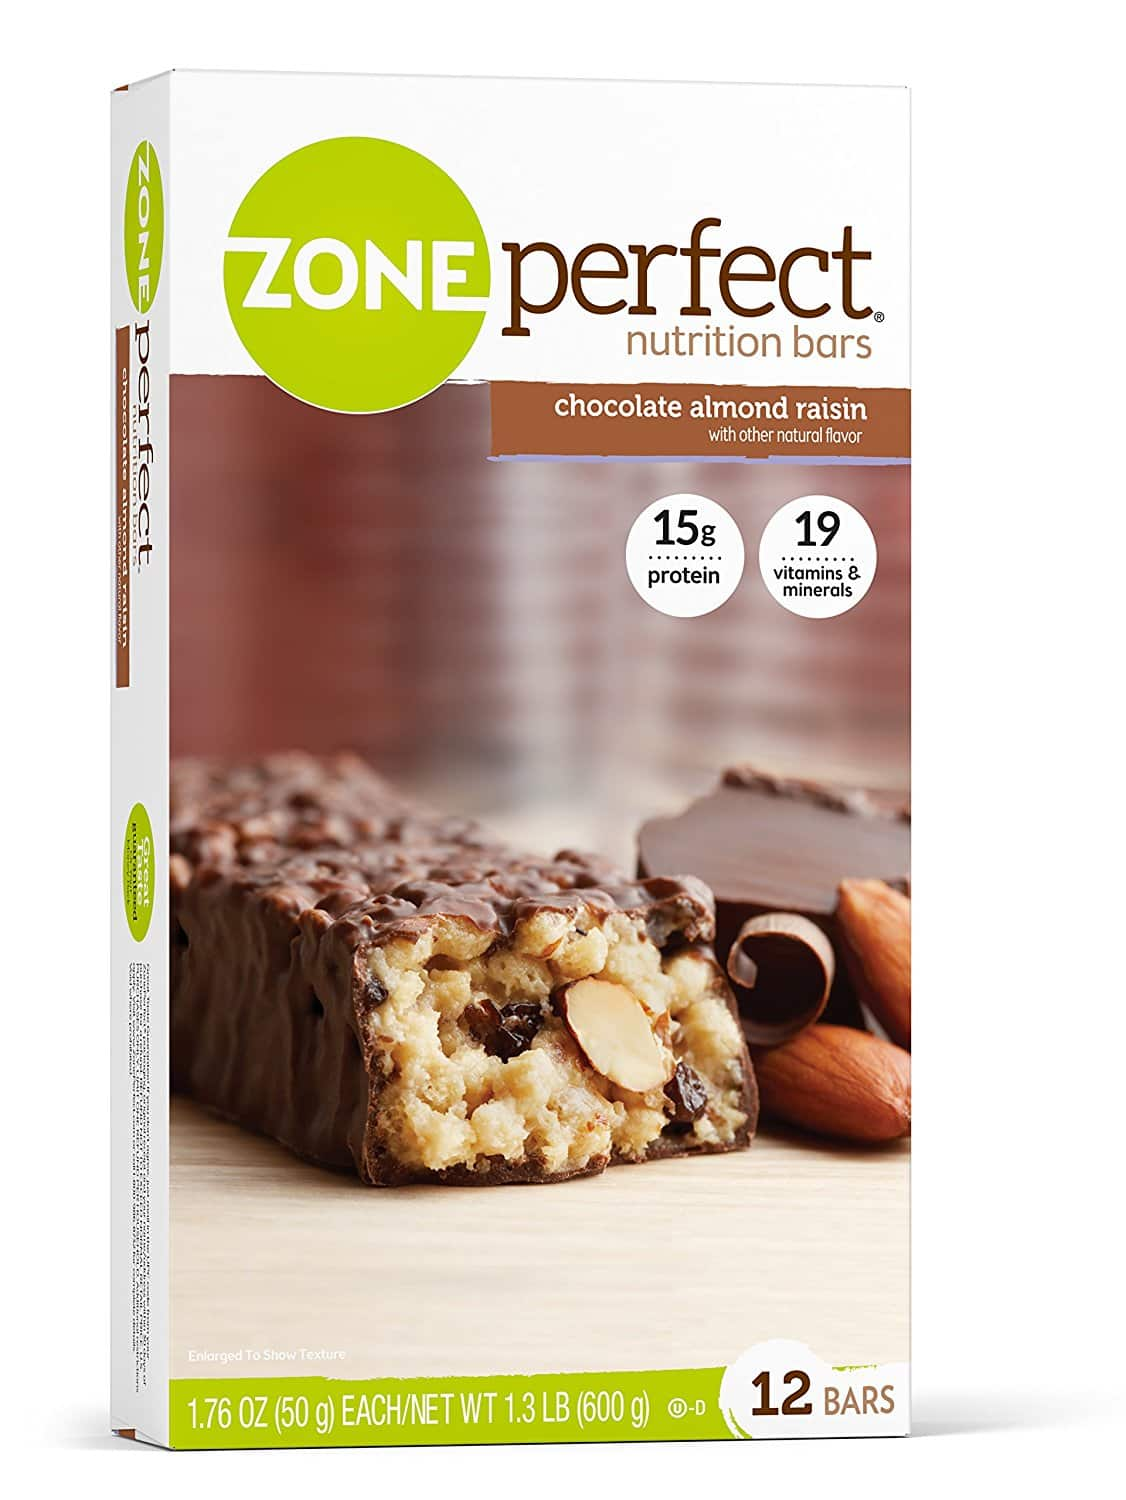 12 Pack ZonePerfect Nutrition Bars - Fudge Graham (Prime only) or Chocolate Almond Raisin - $7.18 AC & S&S ($6.15 AC & 5 S&S Orders) + Free Shipping